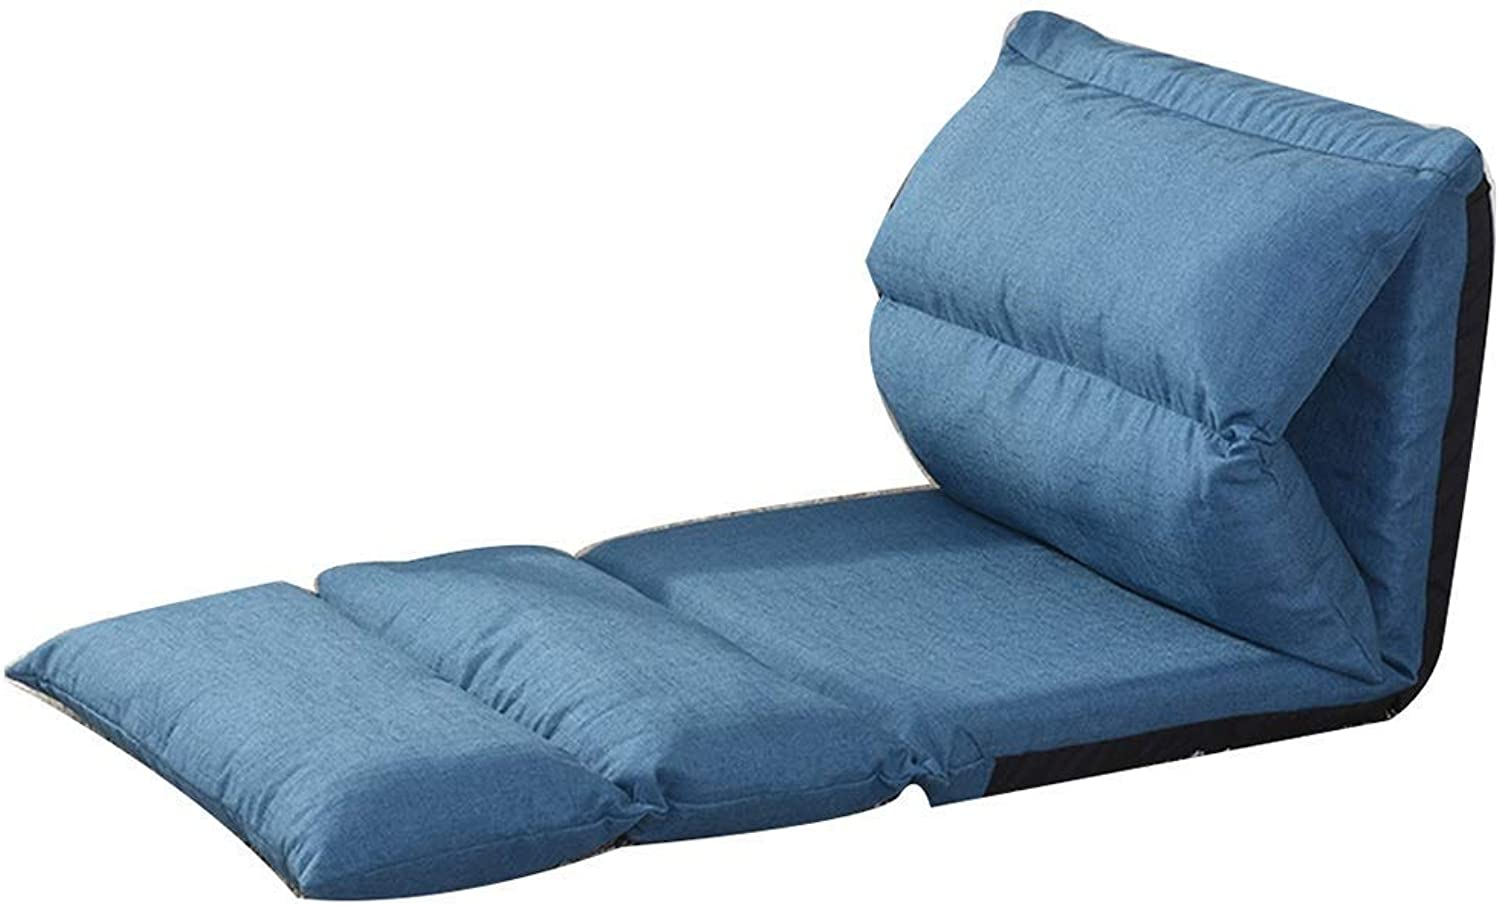 Office Lazy Sofa Creative Single Foldable Bed Chair  Washable Rectangular Sofa Computer Lounge Chair Multi-Speed Adjustable (color   bluee)